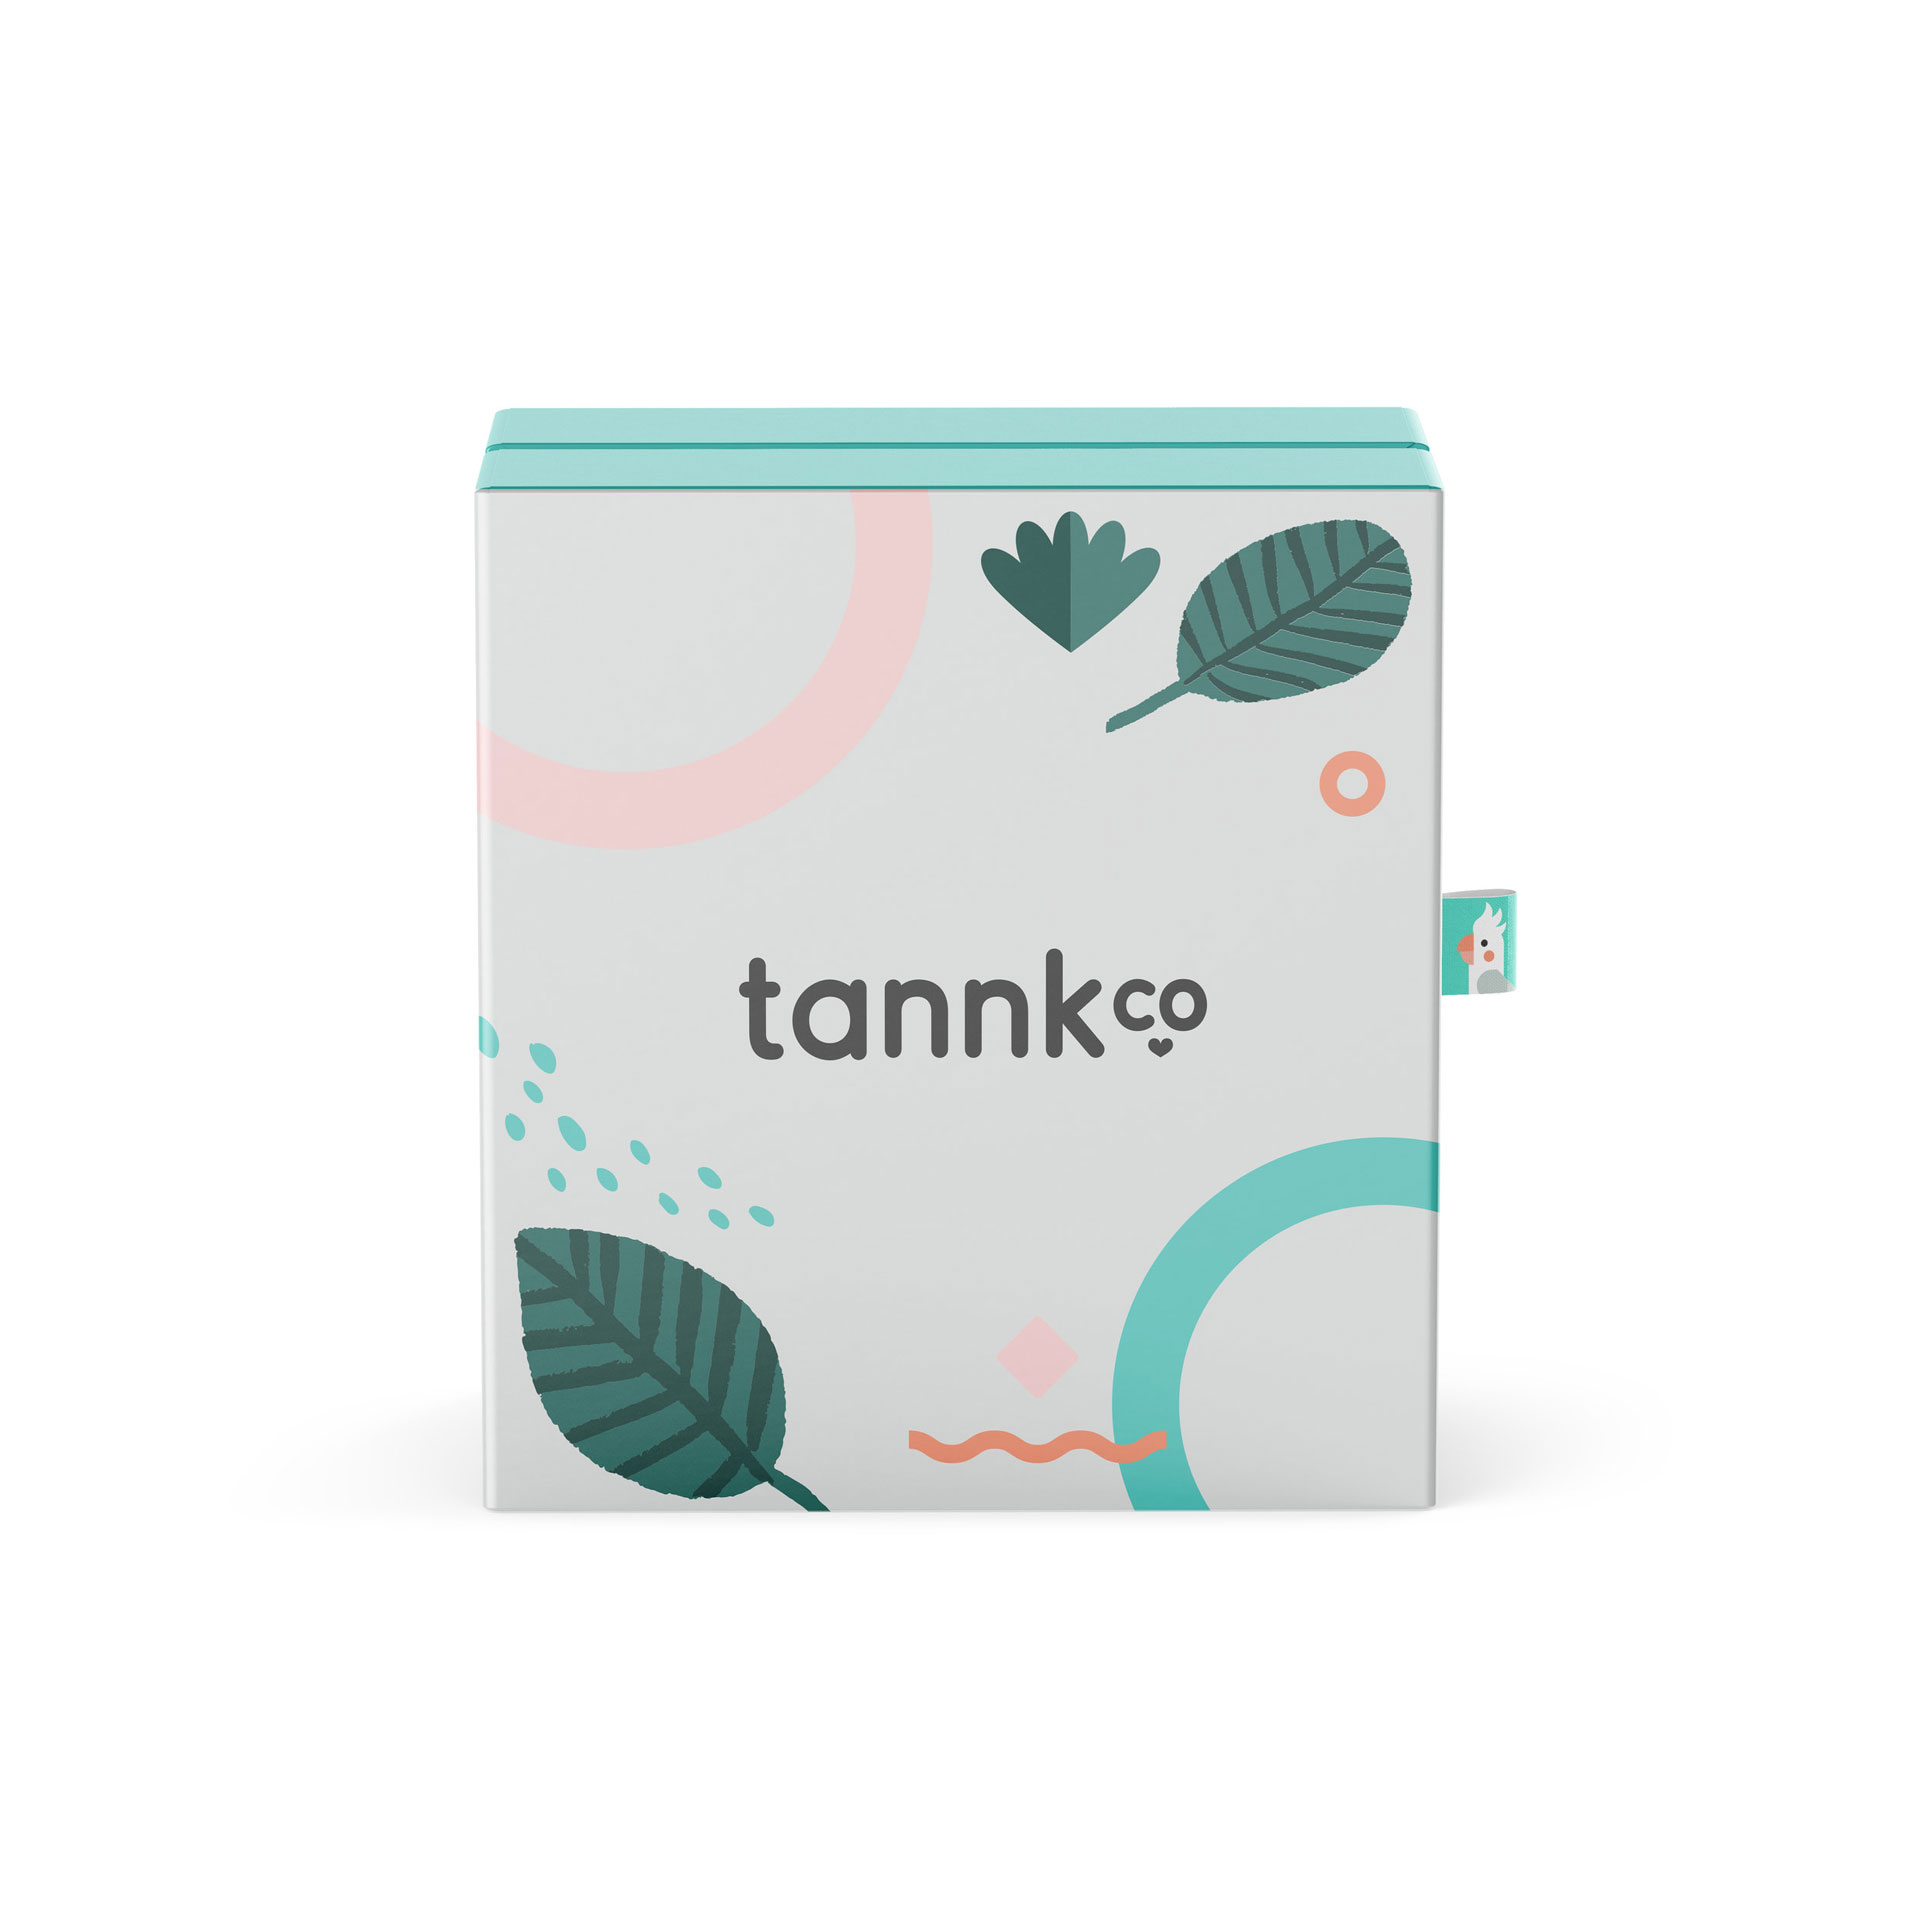 Tannk Co retail package design